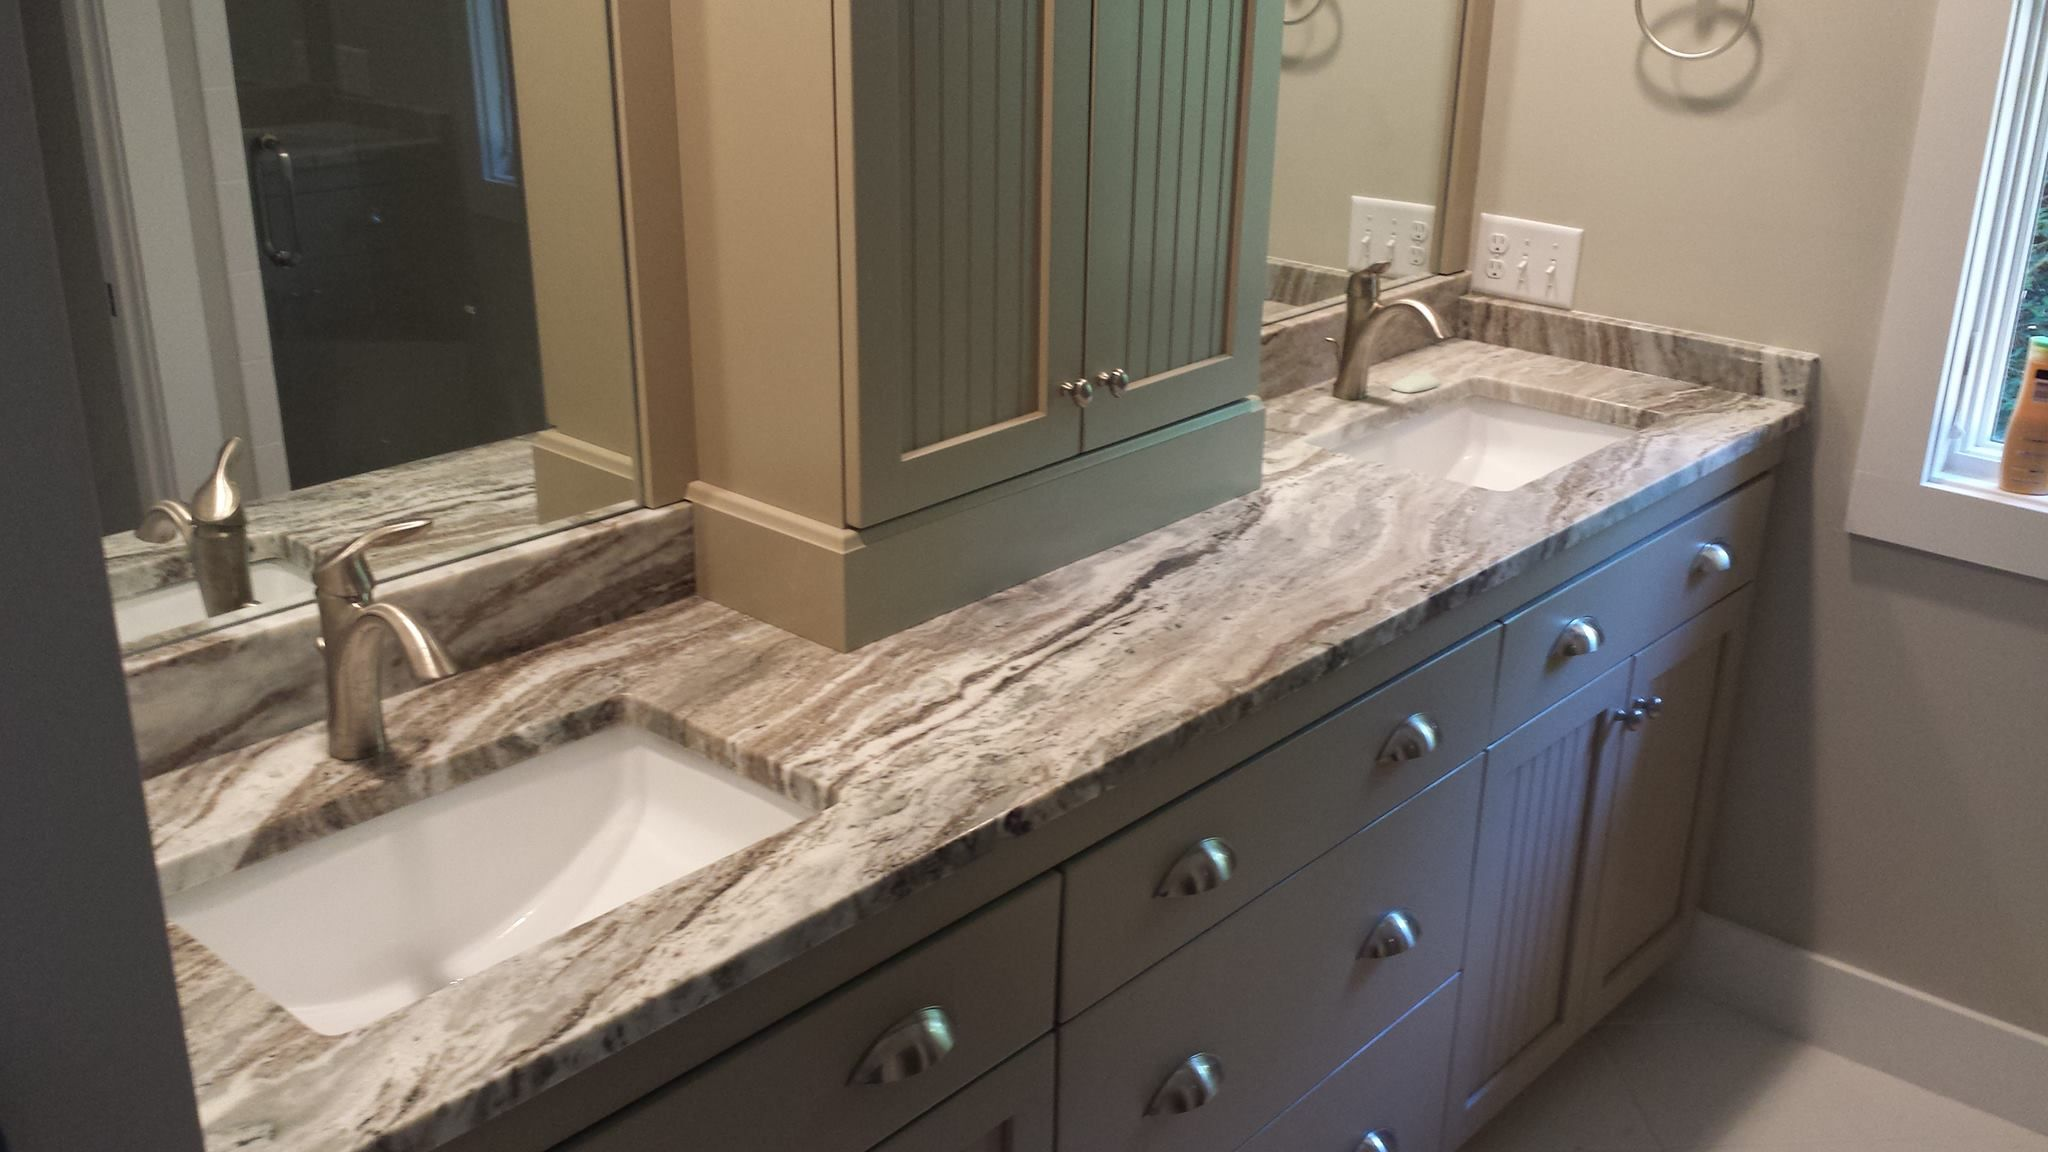 Double Sink Bathroom With Extra Storage Separating Sinks Lovely